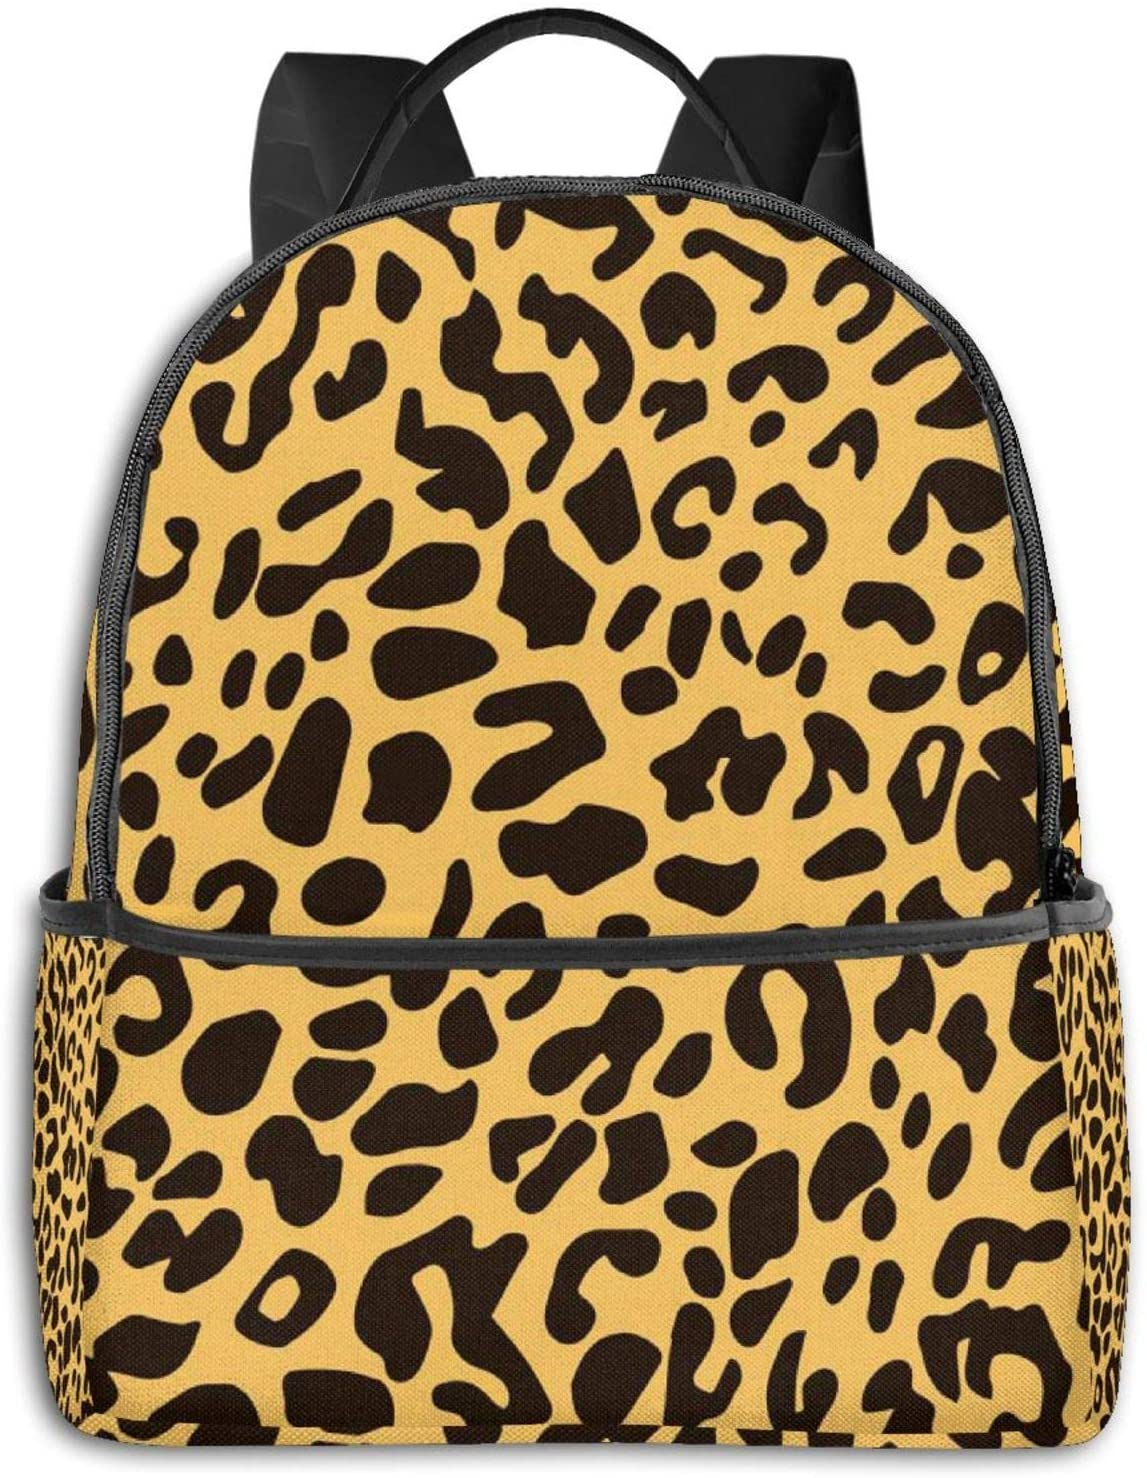 NiYoung Students Backpack Extra Large Book Bags Anti-Theft Rucksack for High School, College, Multipurpose Colorful Leopard Print Laptop Backpack